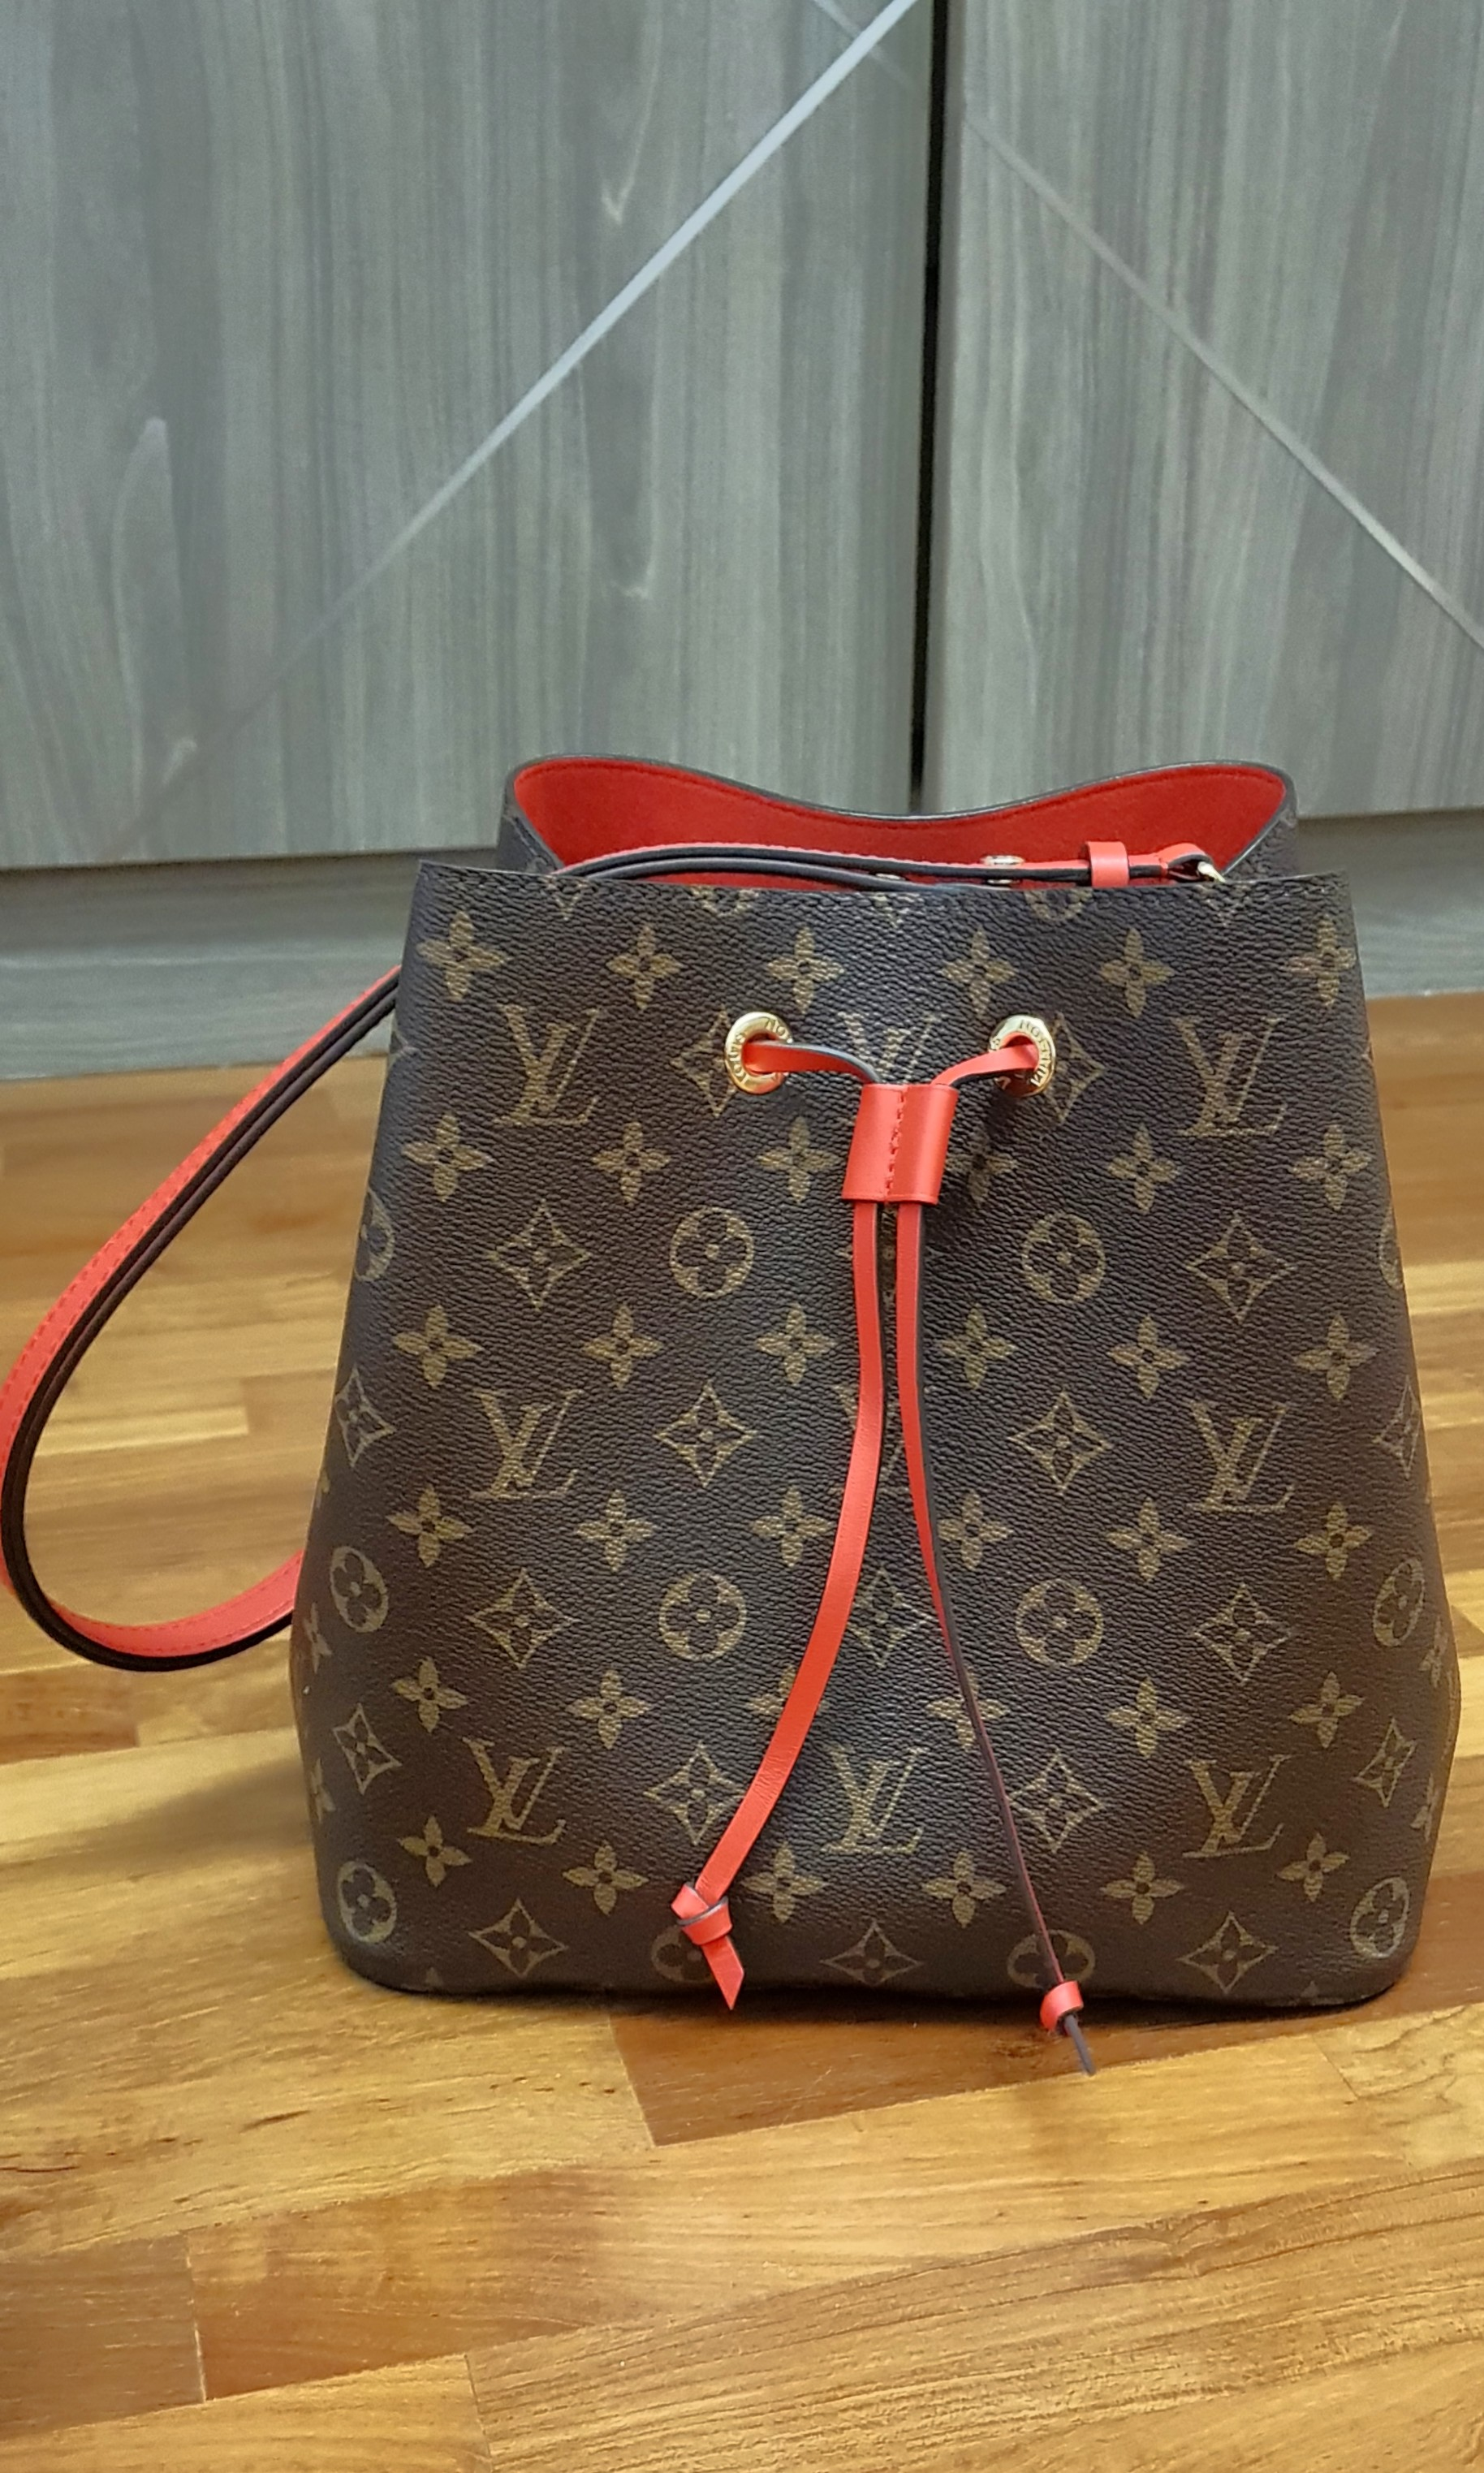 Authentic Louis Vuitton Neo Noe Red Bucket Bag LV 927dbd027db60